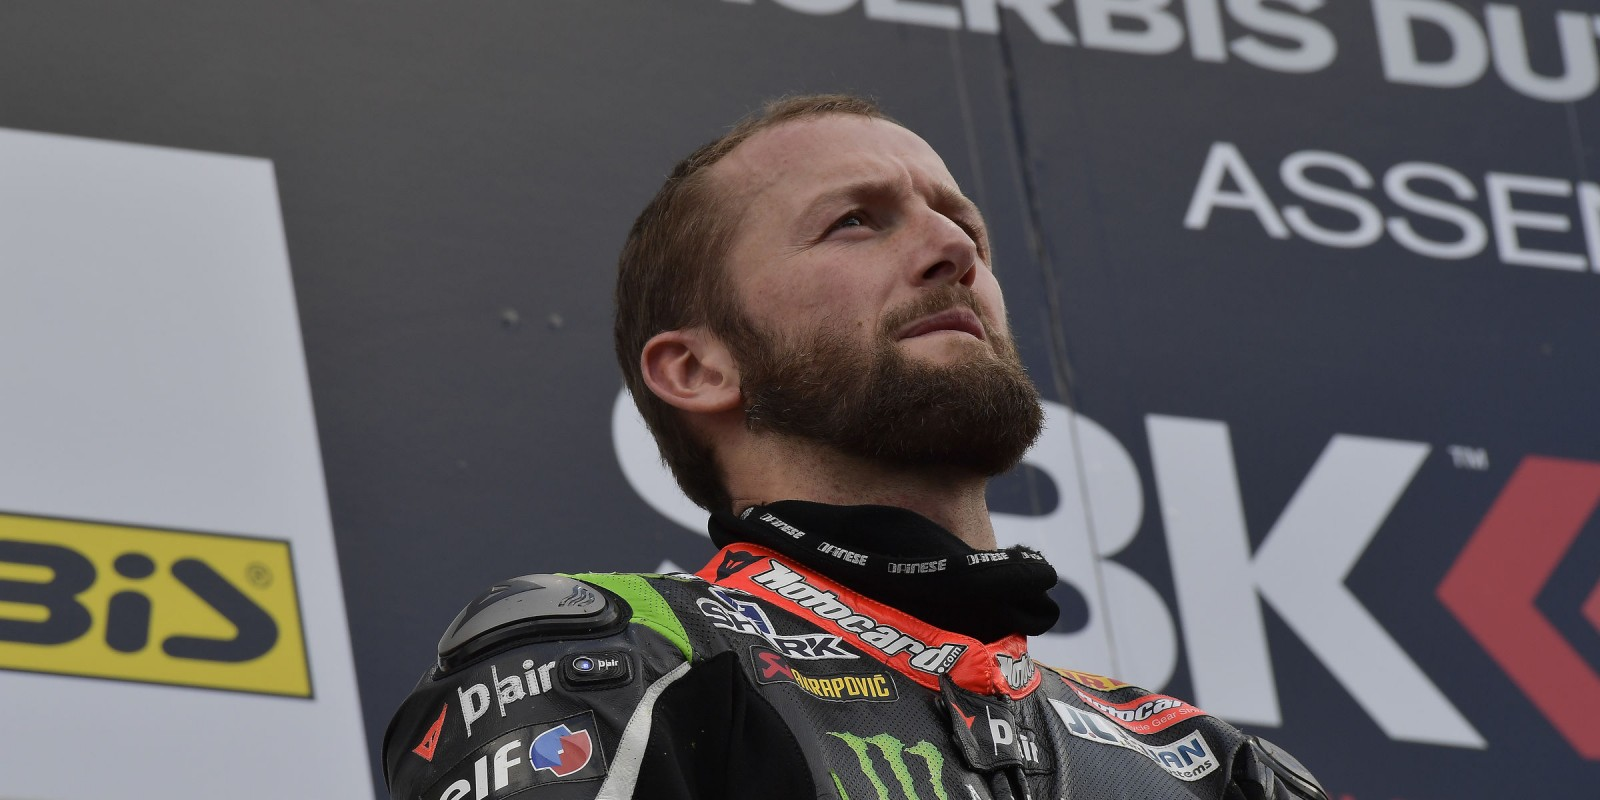 Tom Sykes at the 2017 World Superbike Acerbis Dutch Round